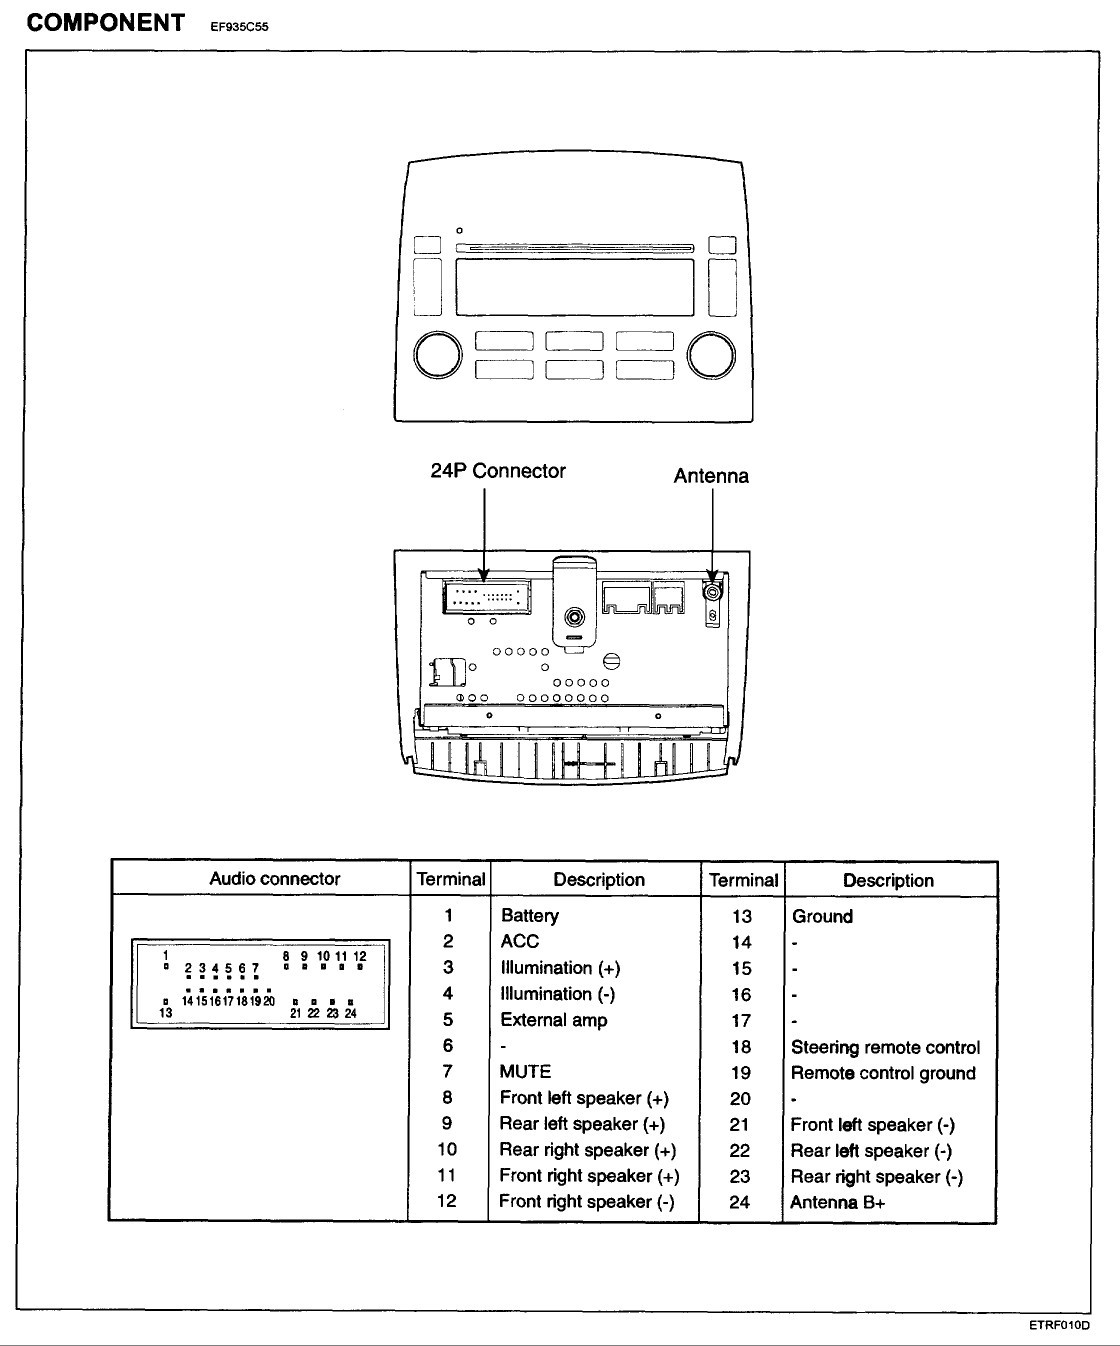 Hyundai Radio Wiring Diagrams | Wiring Schematic Diagram on